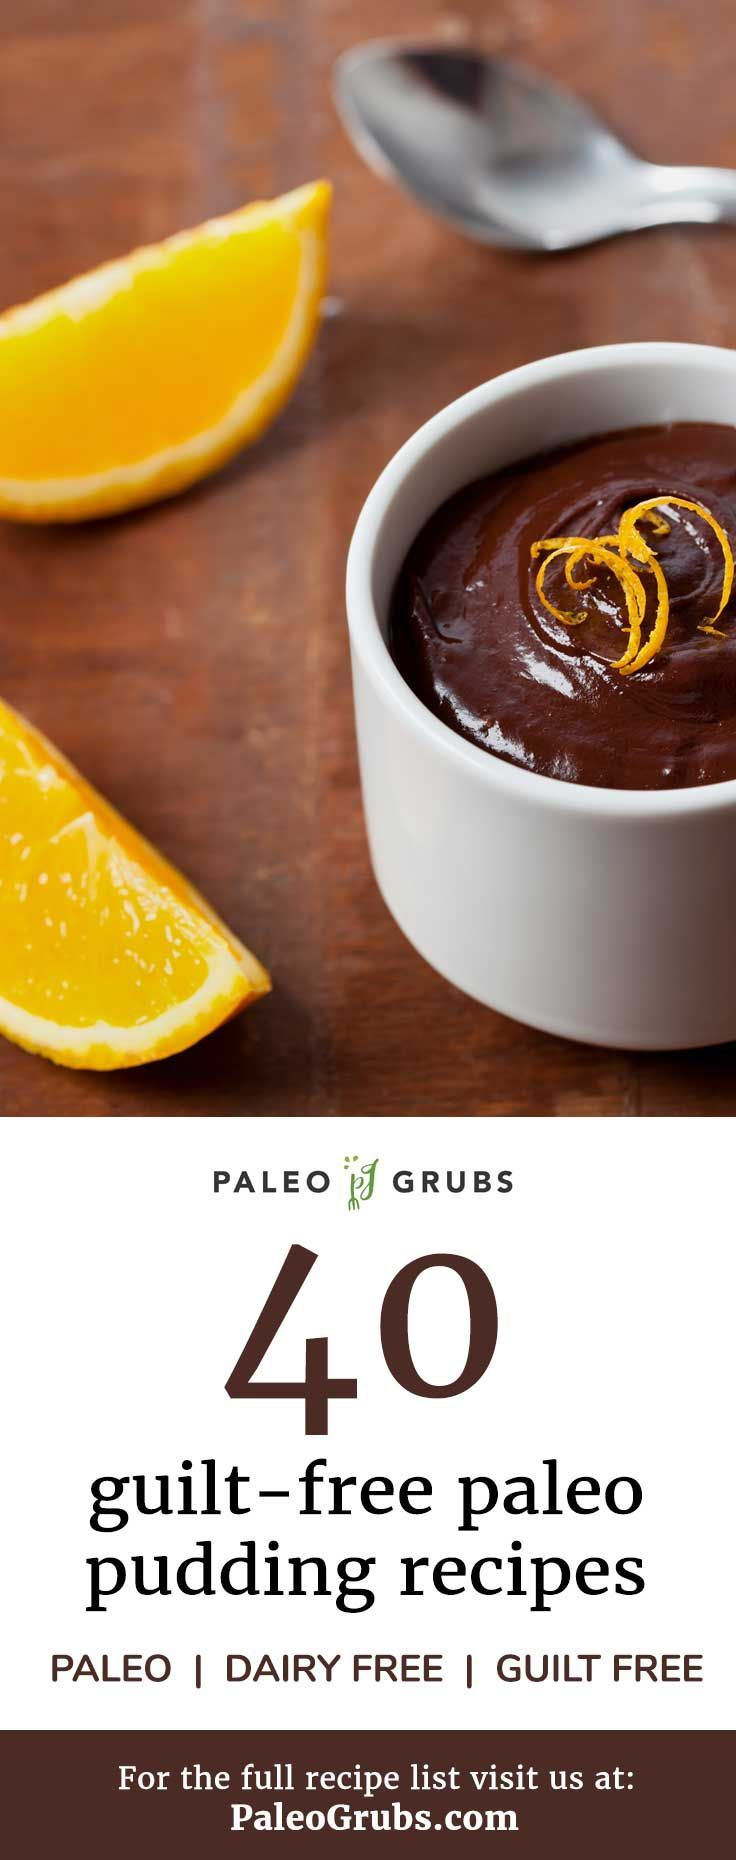 40 Guilt-Free Paleo Pudding Recipes (Chocolate, Chia Seed and More)